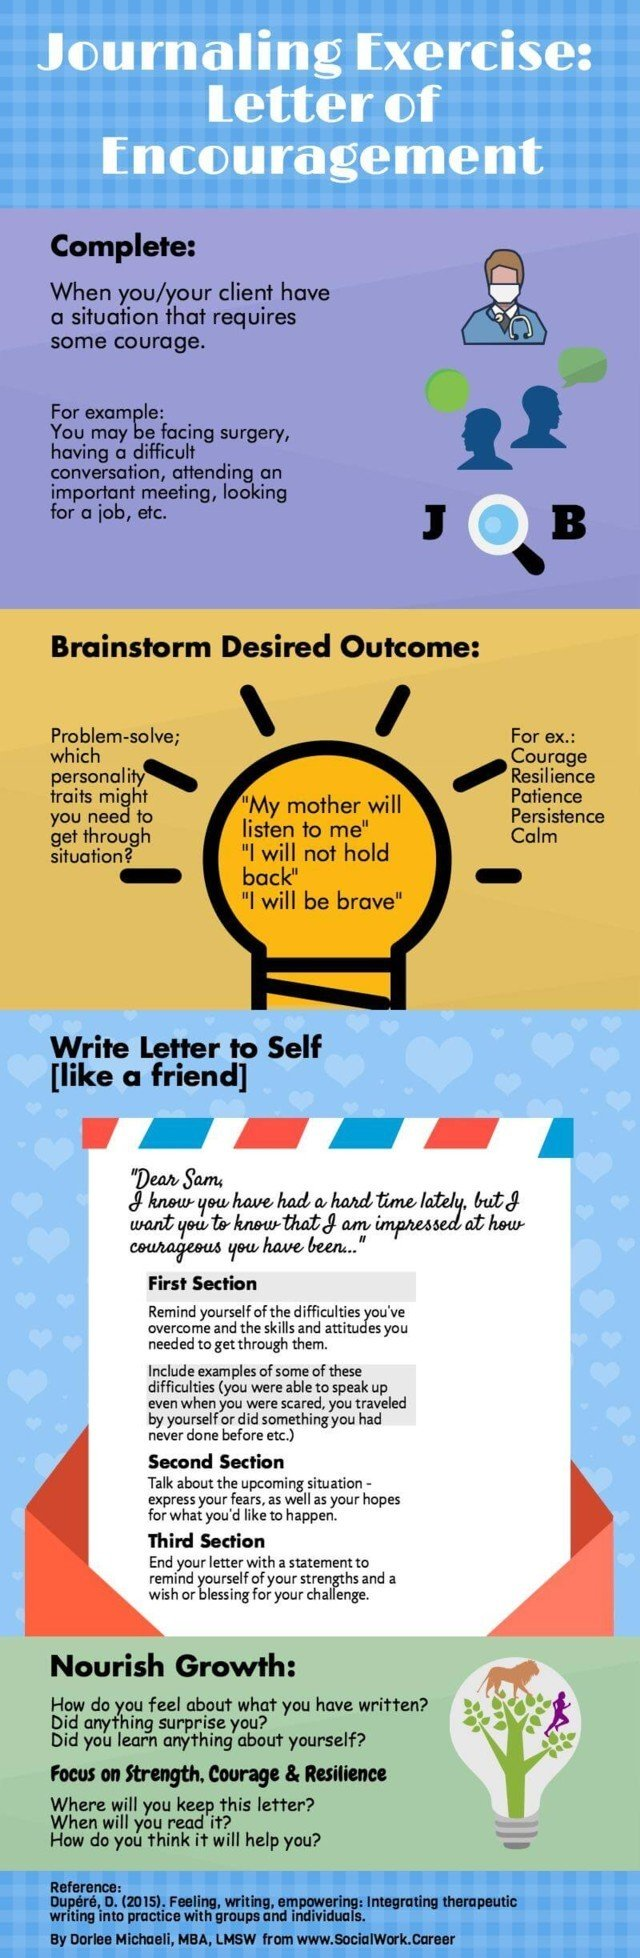 Journaling Exercise Infographic